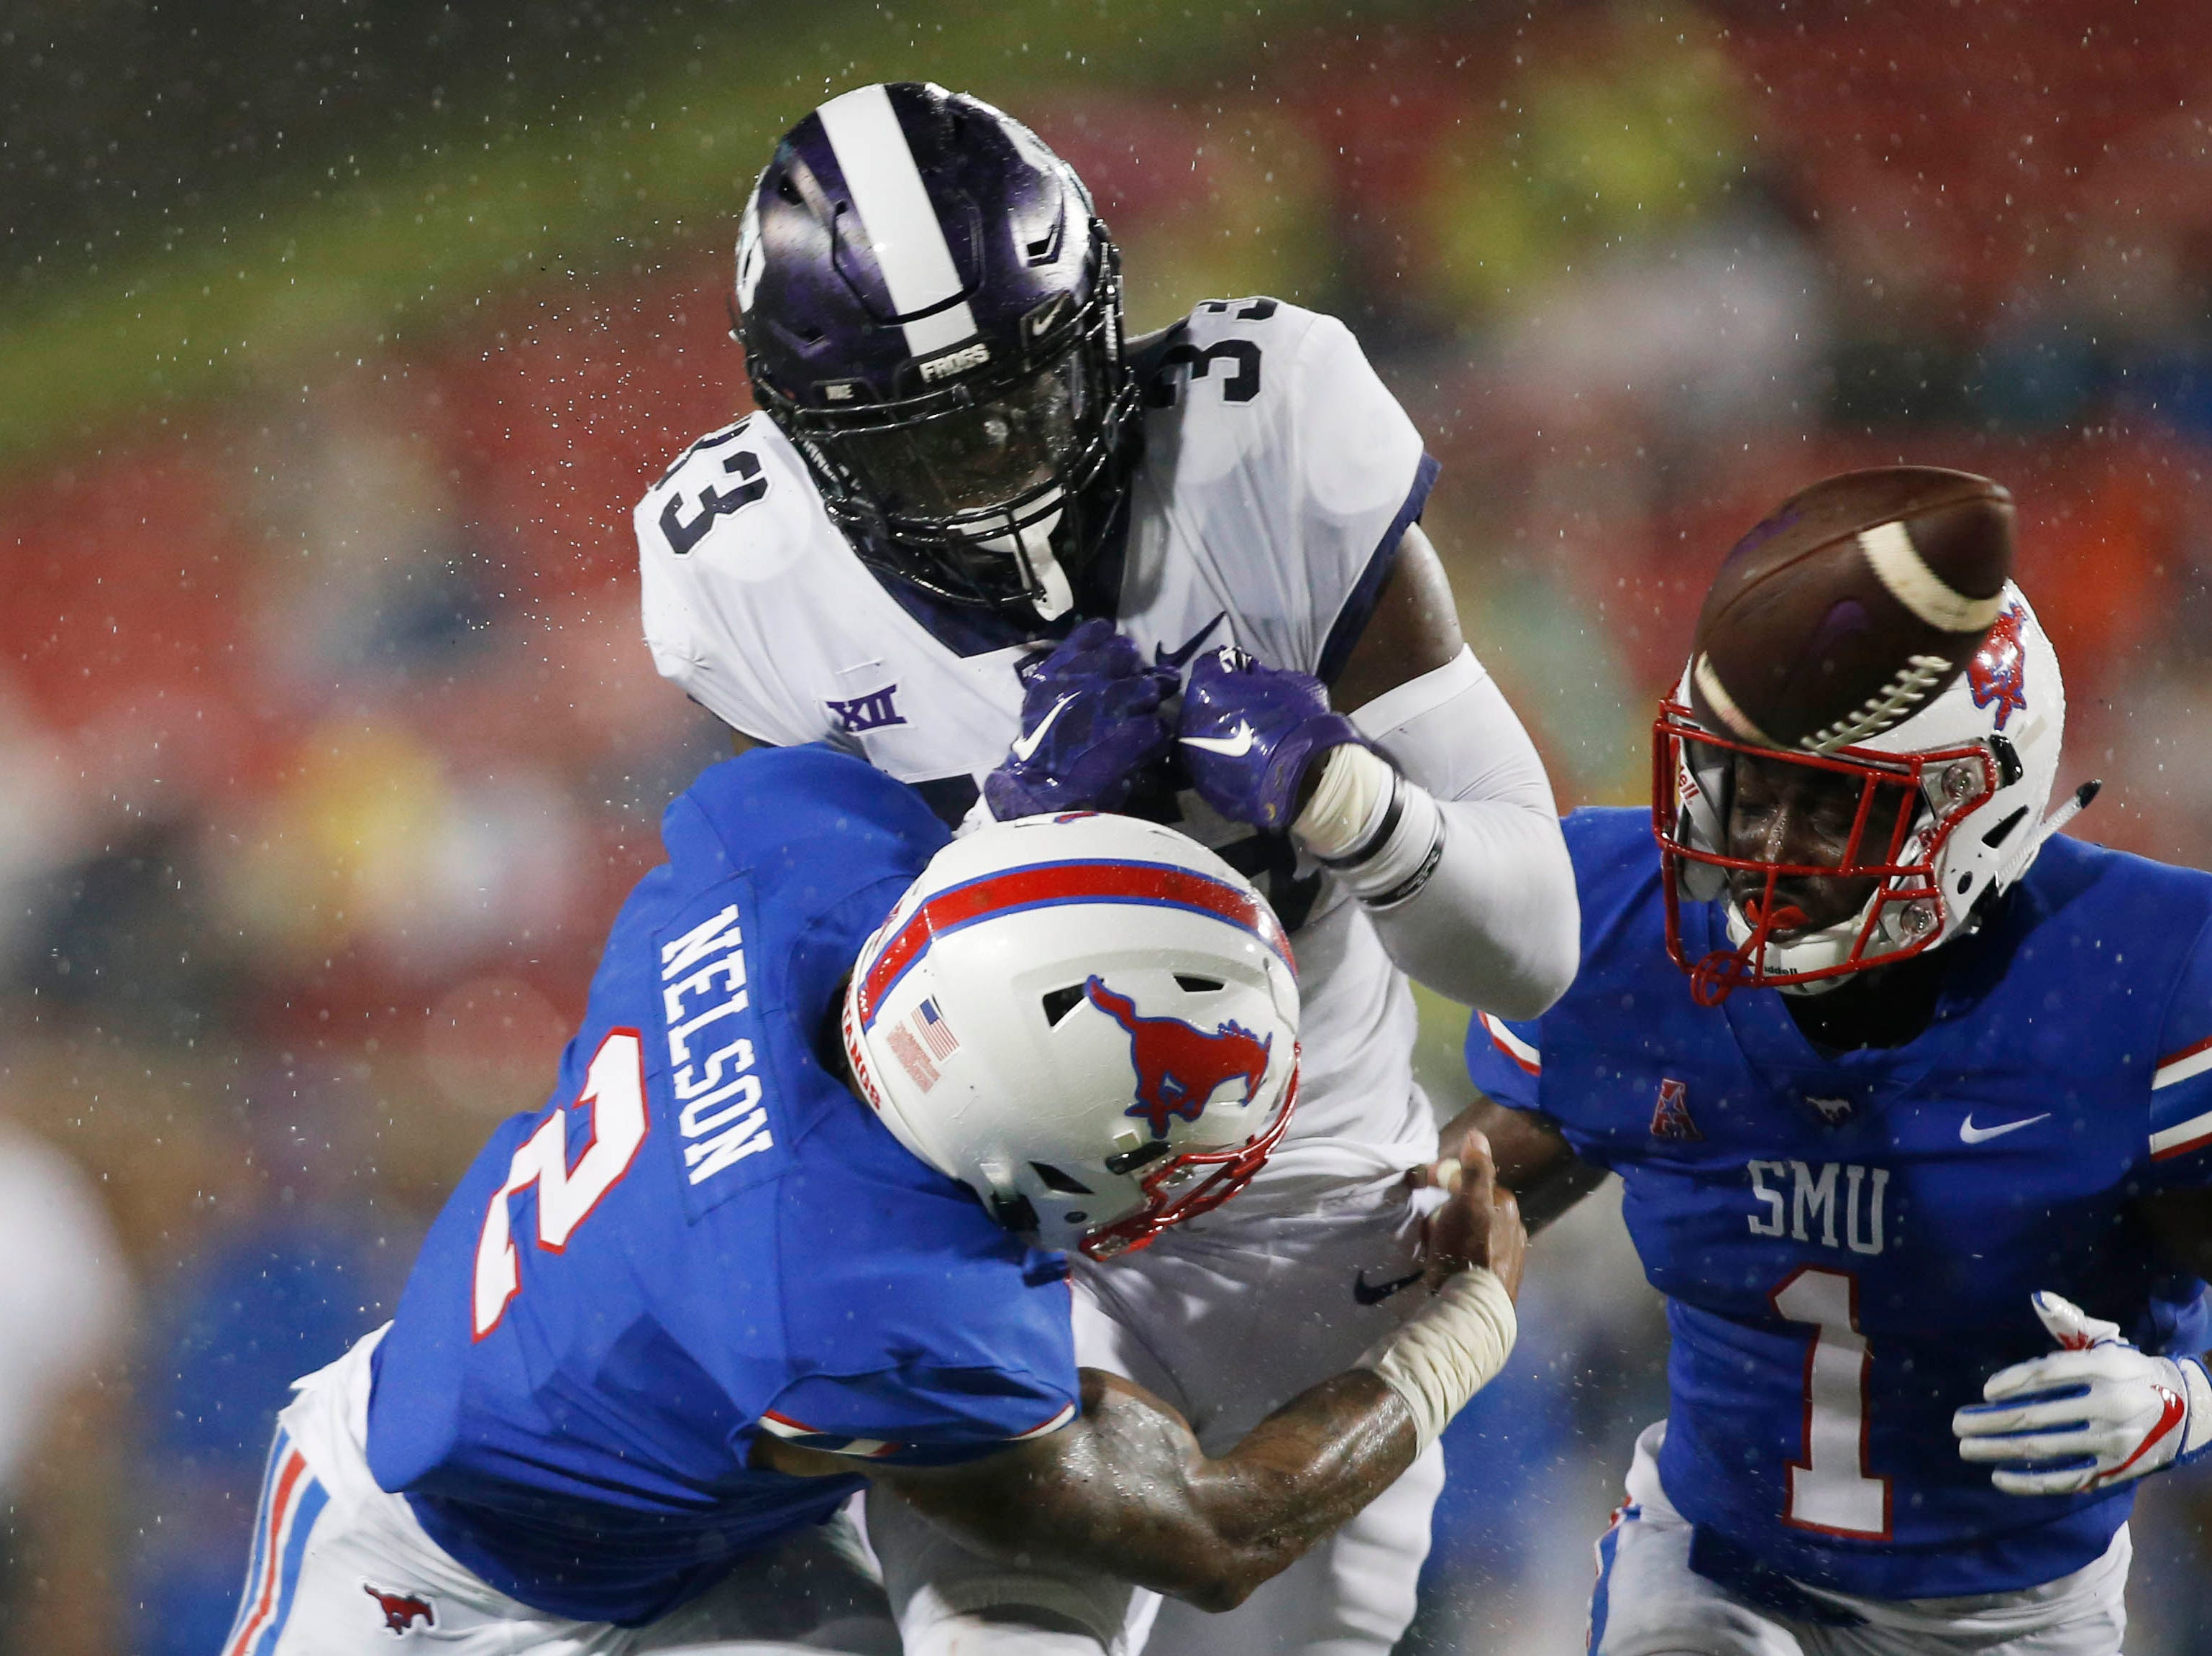 TCU Horned Frogs running back Sewo Olonilua (33) is tackled by Southern Methodist Mustangs safety Patrick Nelson (2) and fumbles the ball in the second quarter at Gerald J. Ford Stadium.